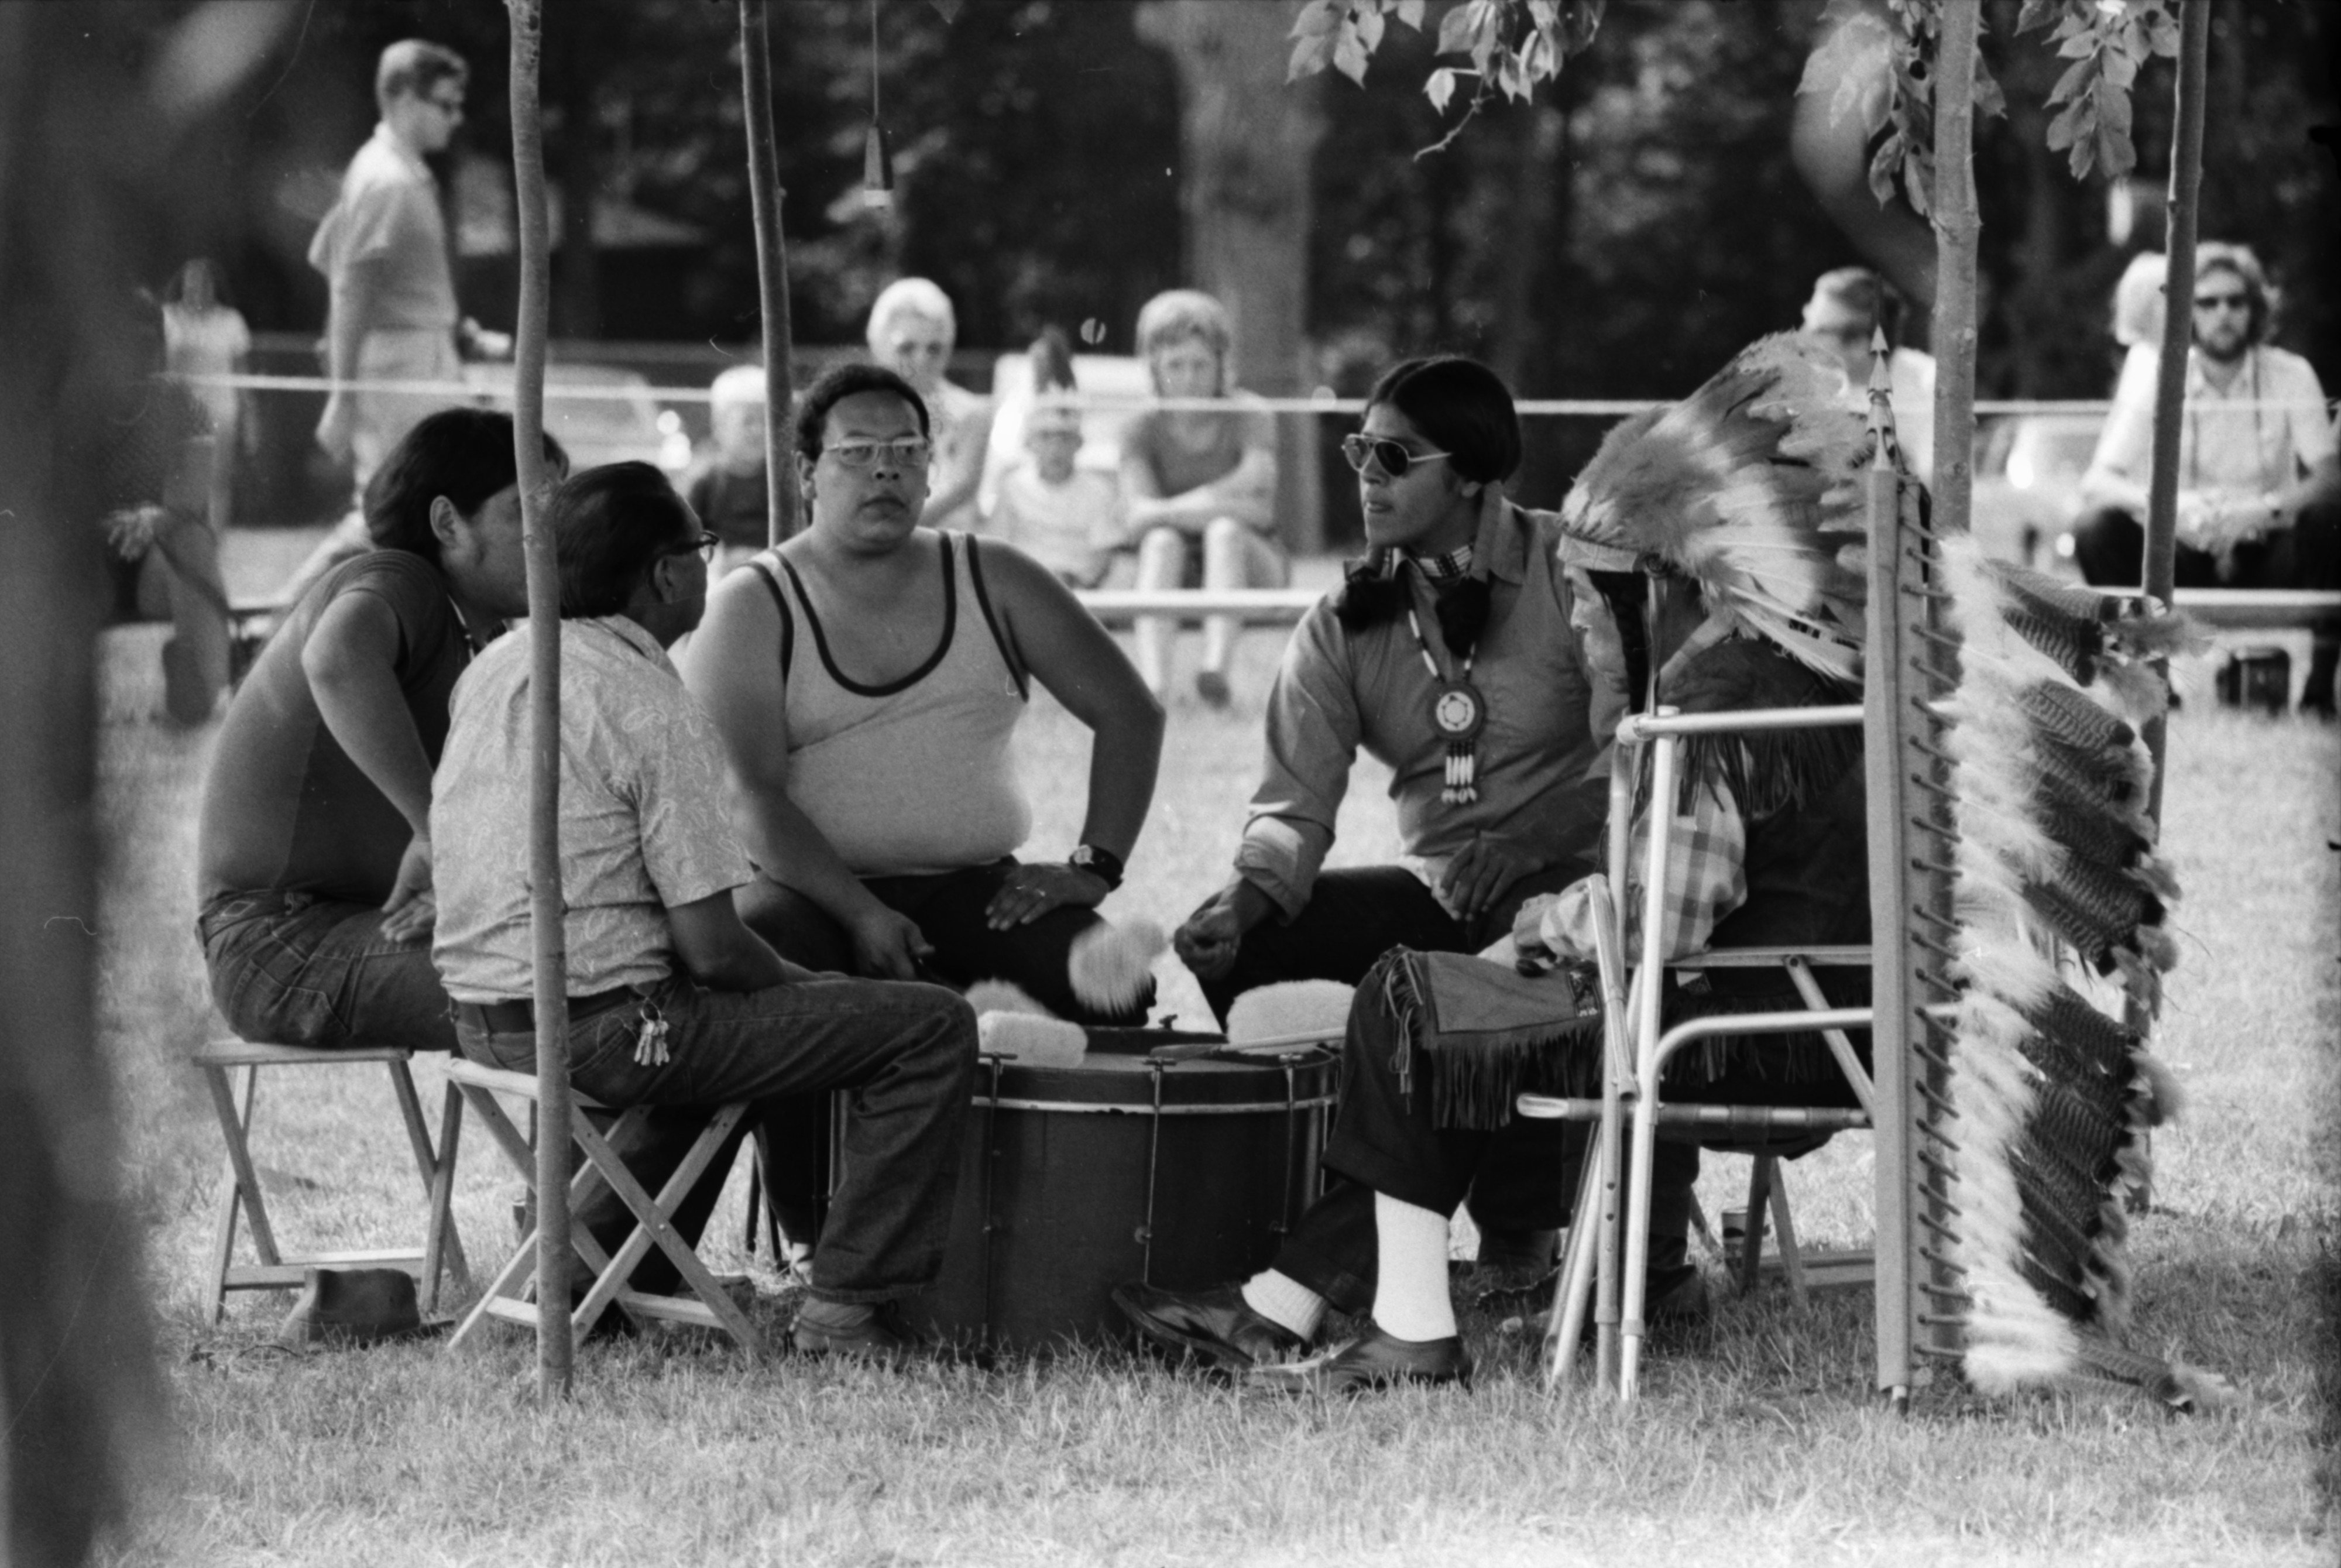 Drum Circle at the annual Powwow sponsored by American Indians Unlimited (AIU), at Knights of Columbus Park, August 1972 image